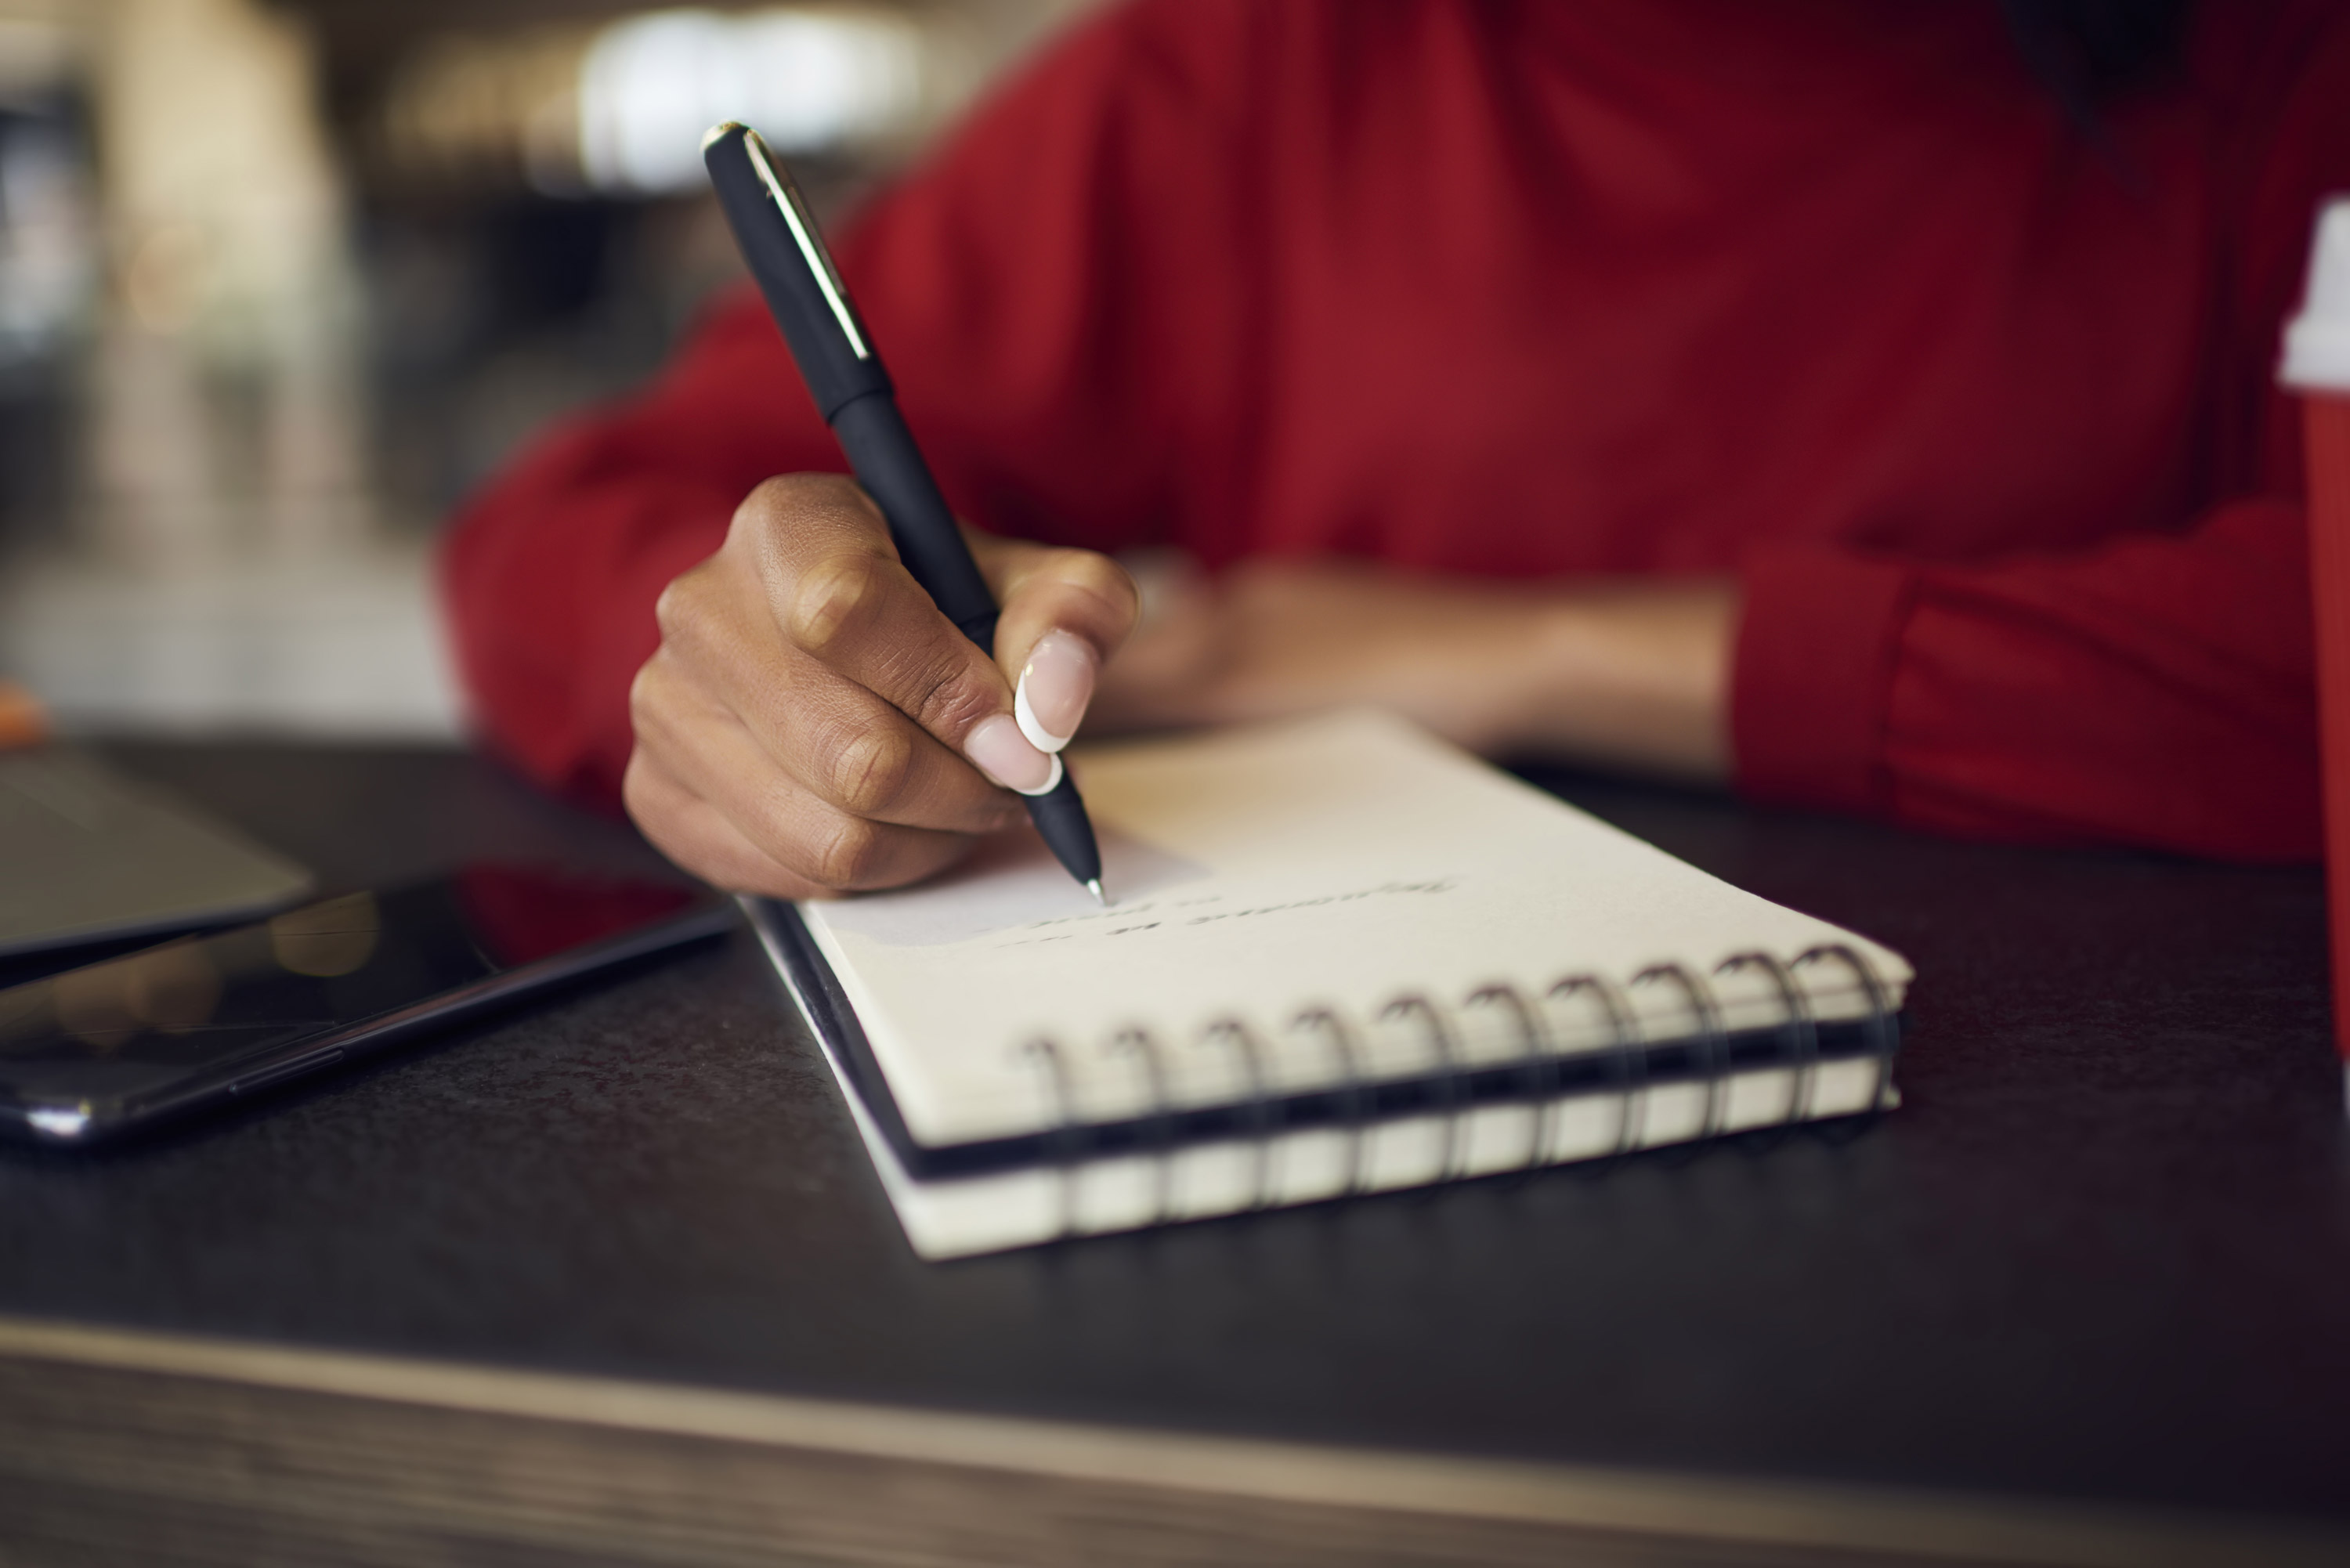 The psychology behind to-do lists and how they can make you feel less anxious